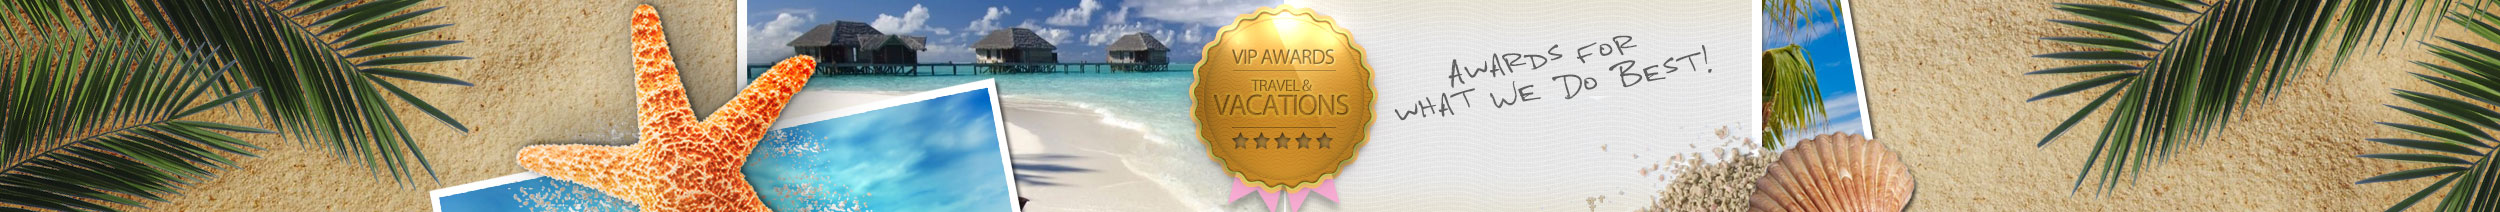 Sandals and Beaches Resorts Star Awards